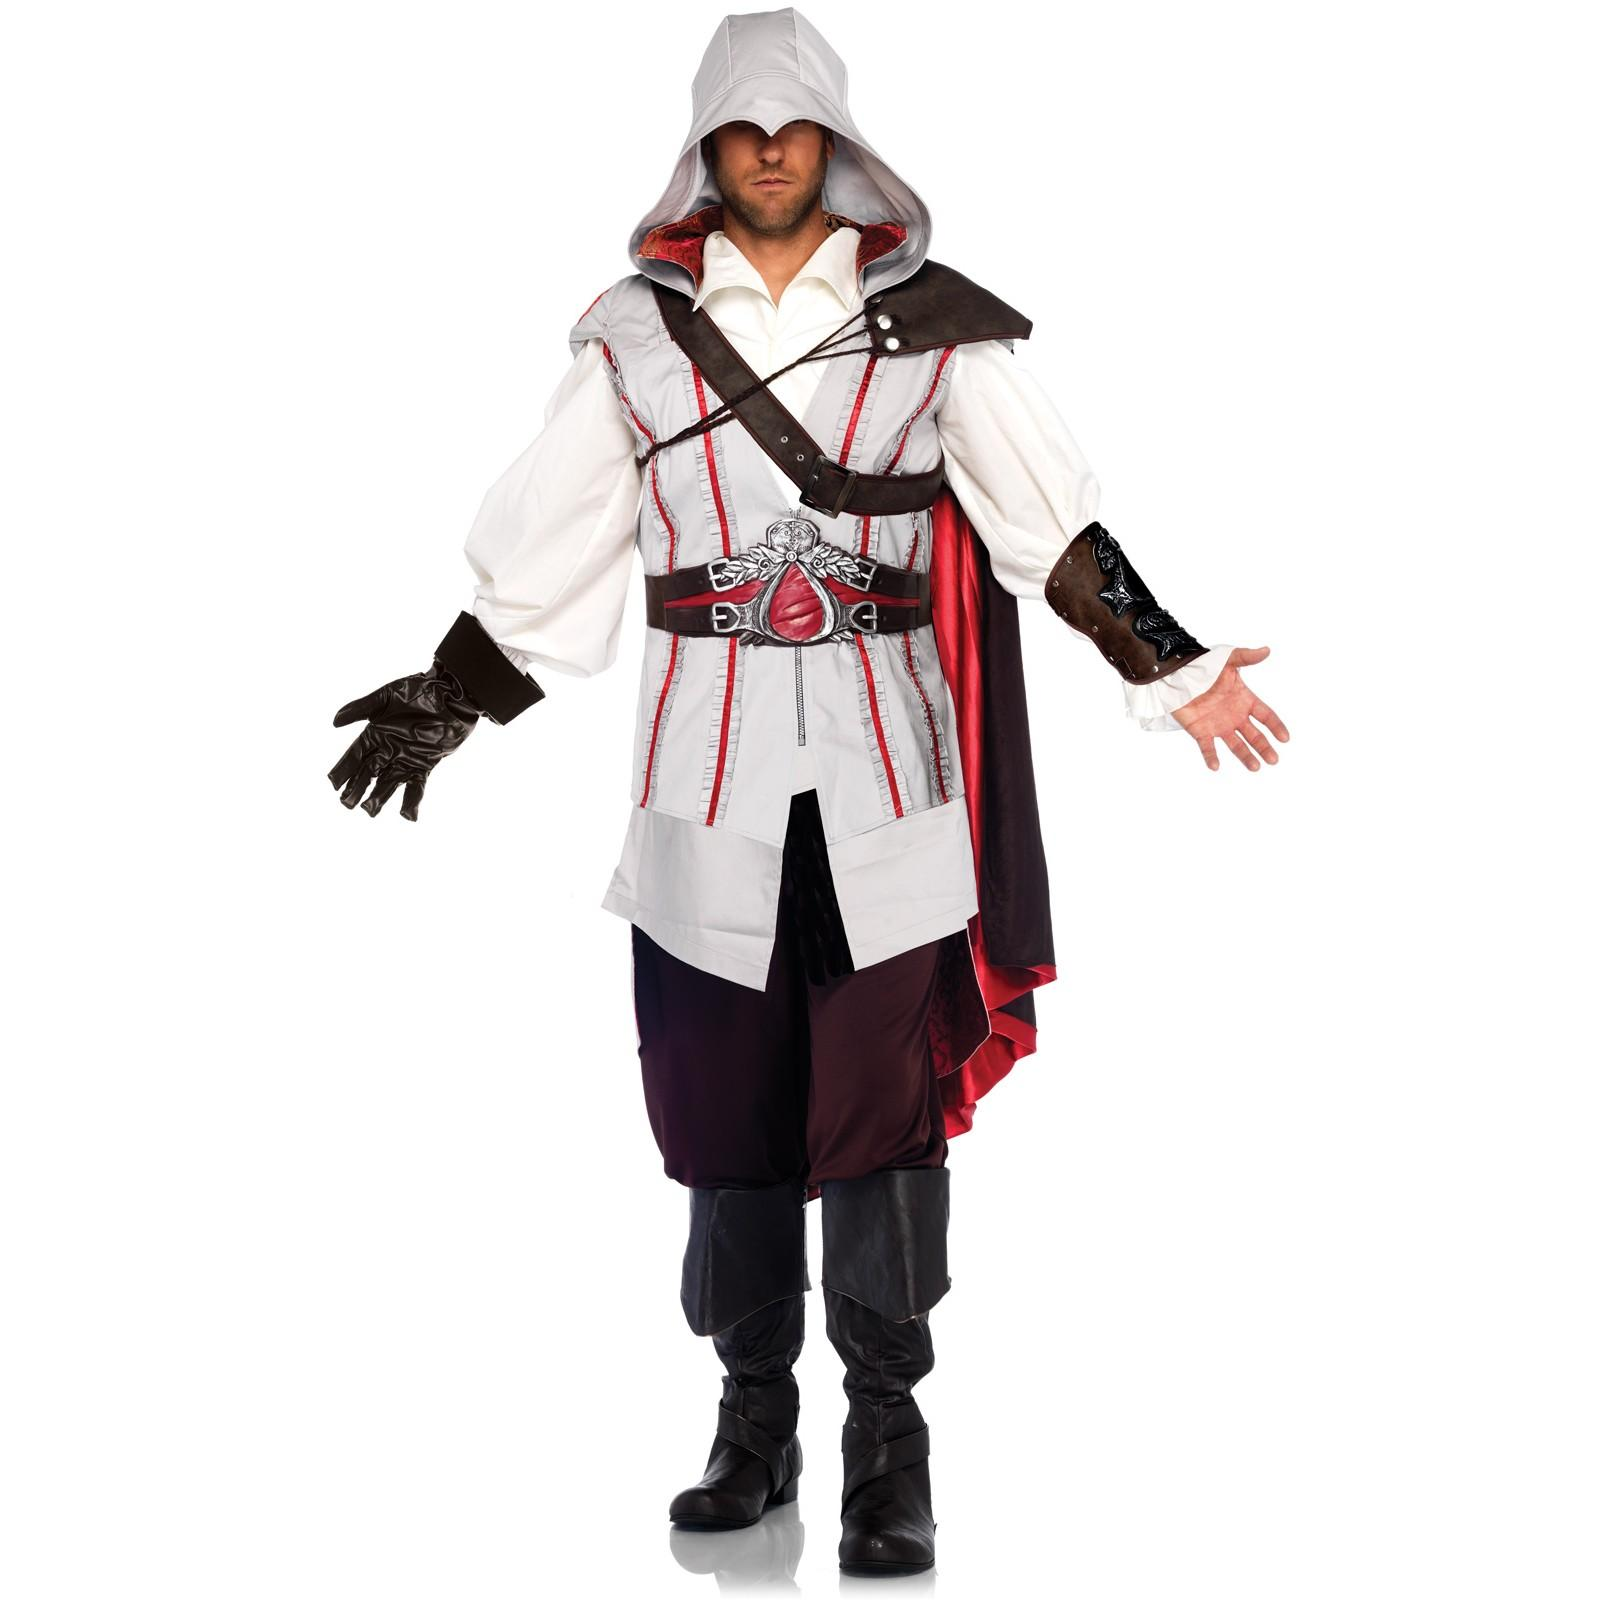 Assassin Costume That Gives You Super Feelings